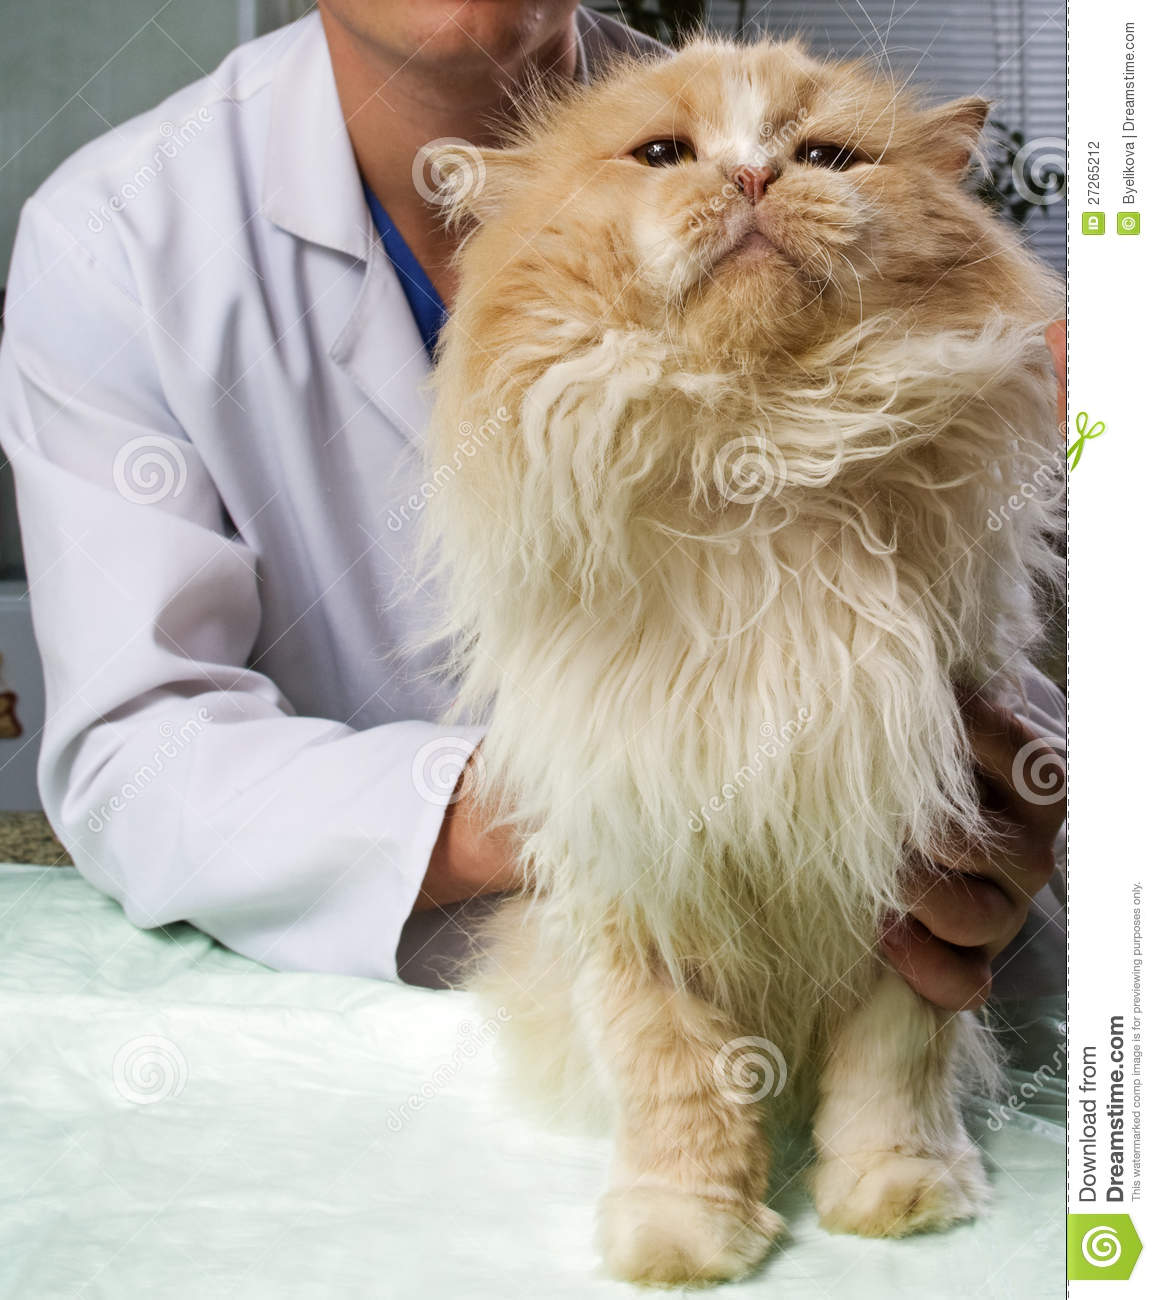 Wounded cat treated